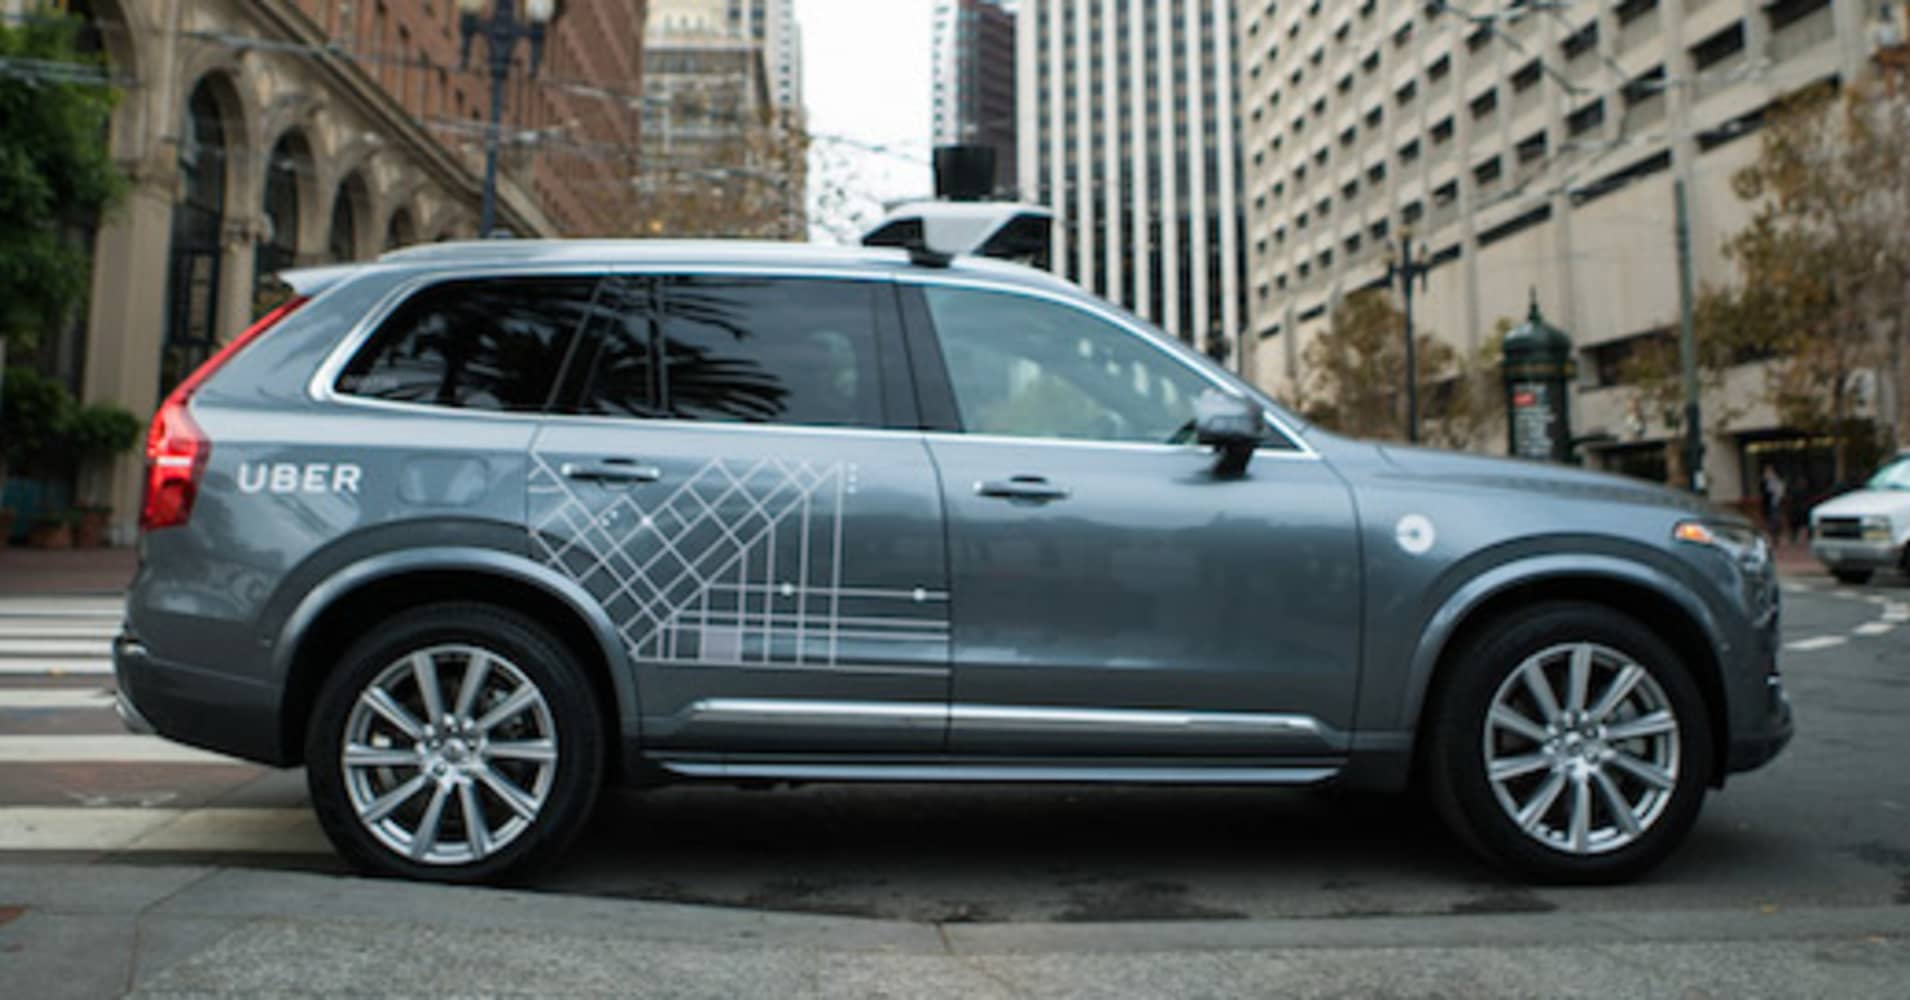 Uber Suspends Self Driving Car Program After Arizona Crash